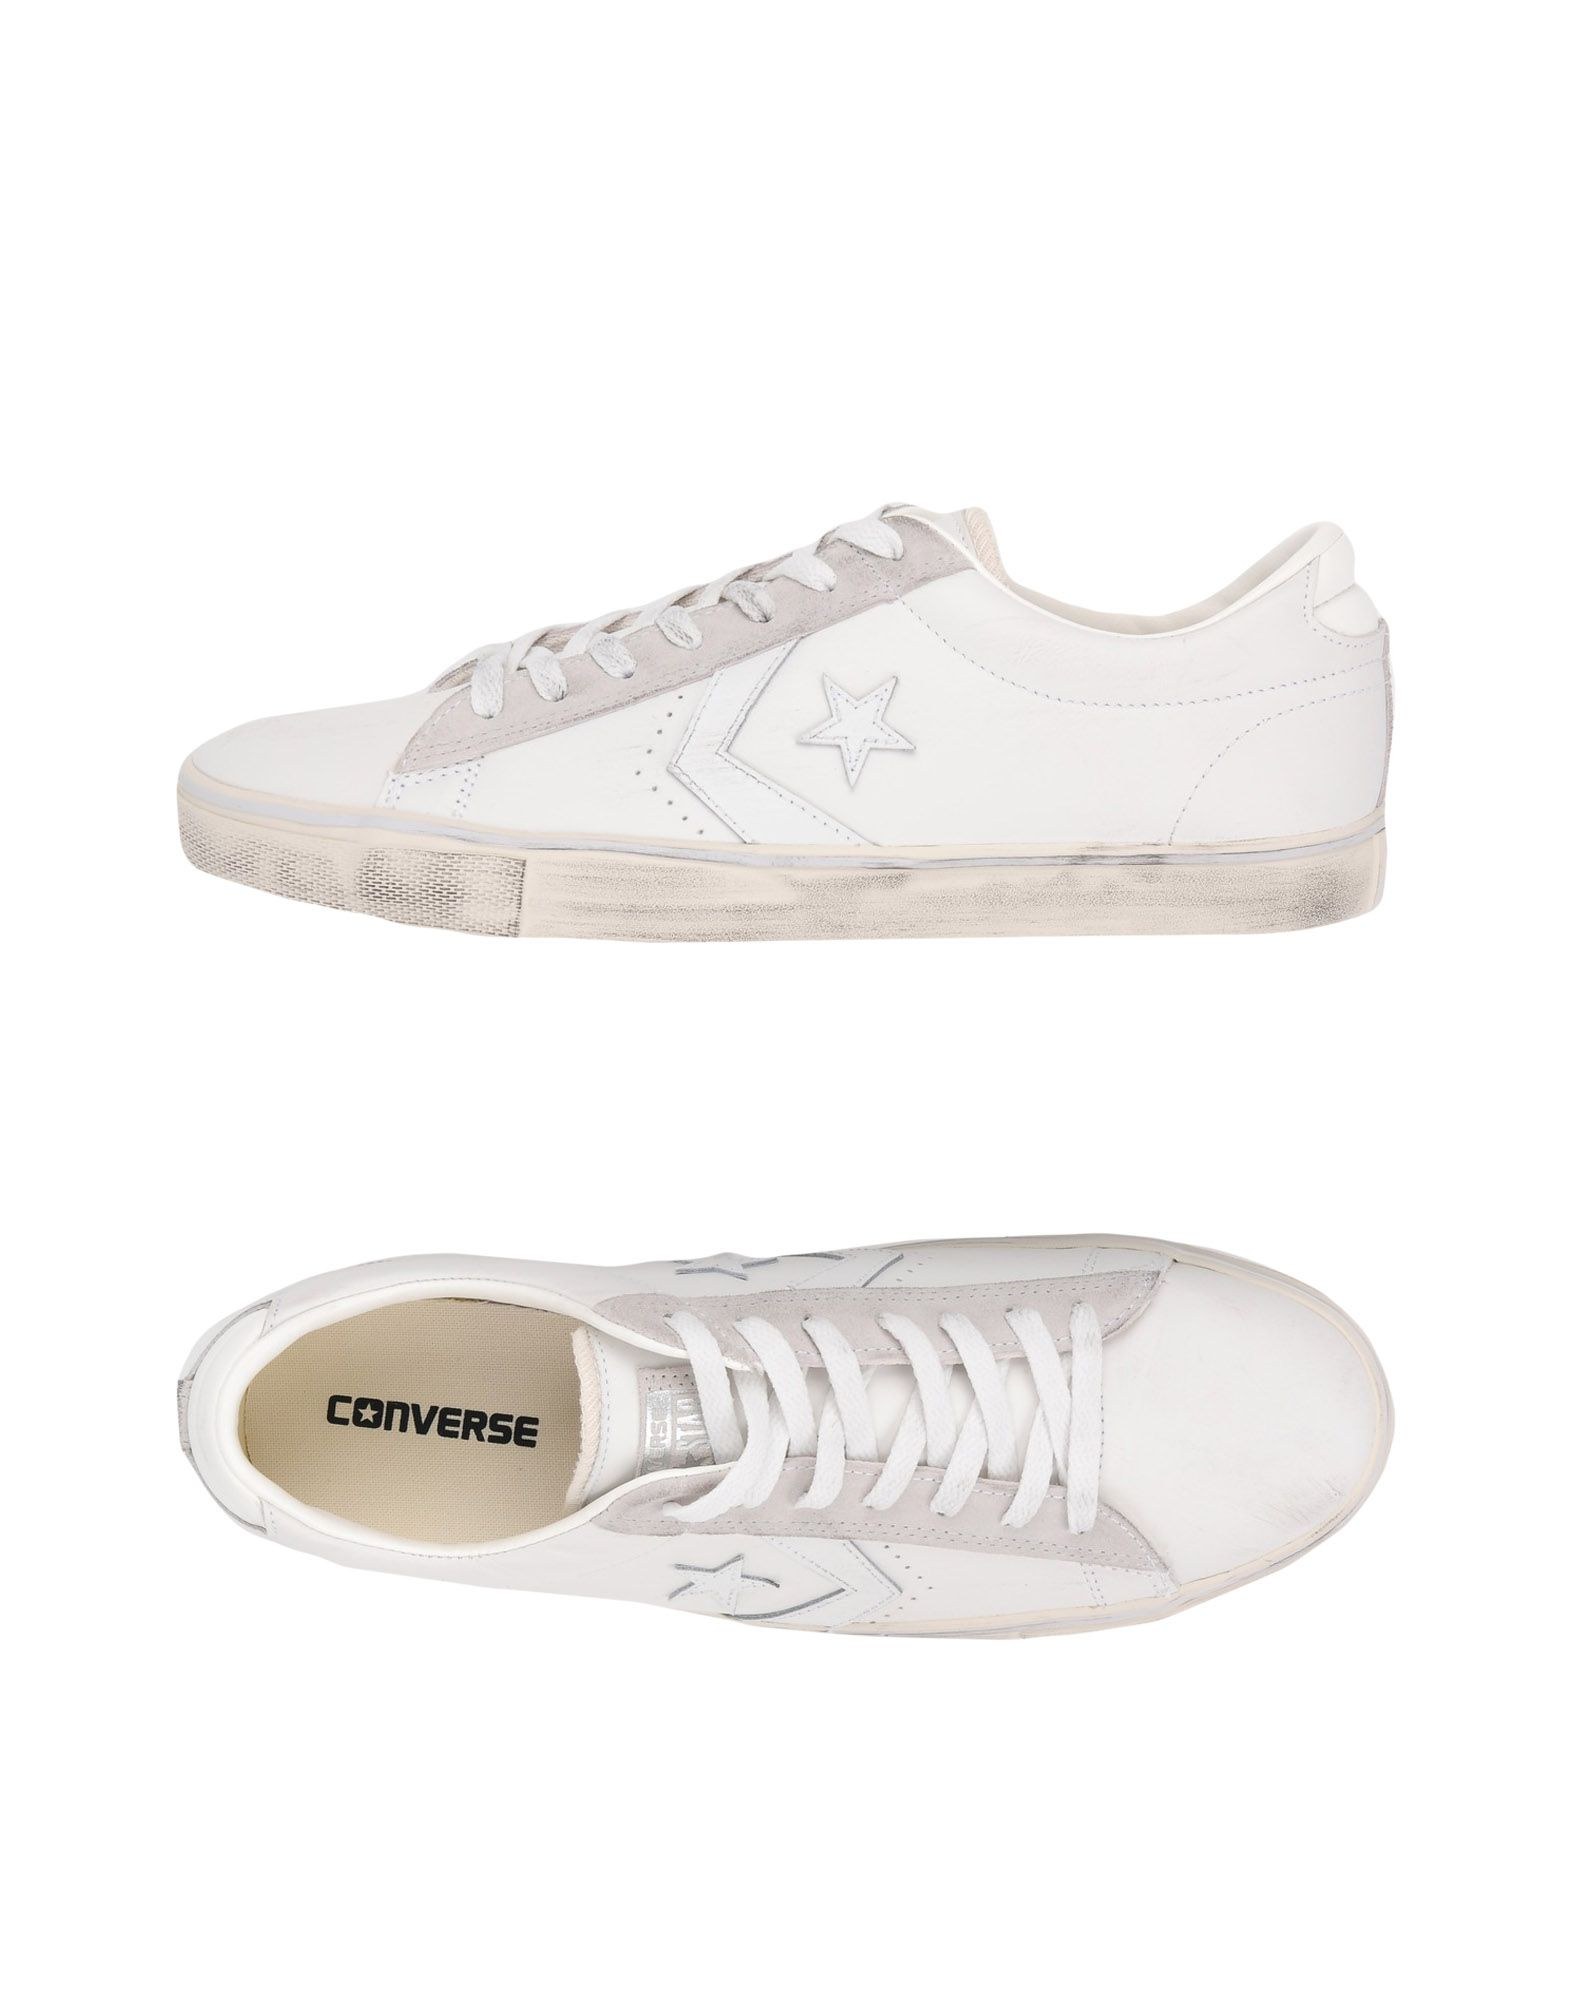 Sneakers Converse All Star Pro Leather Vulc Ox Leather Distressed - Uomo - Acquista online su